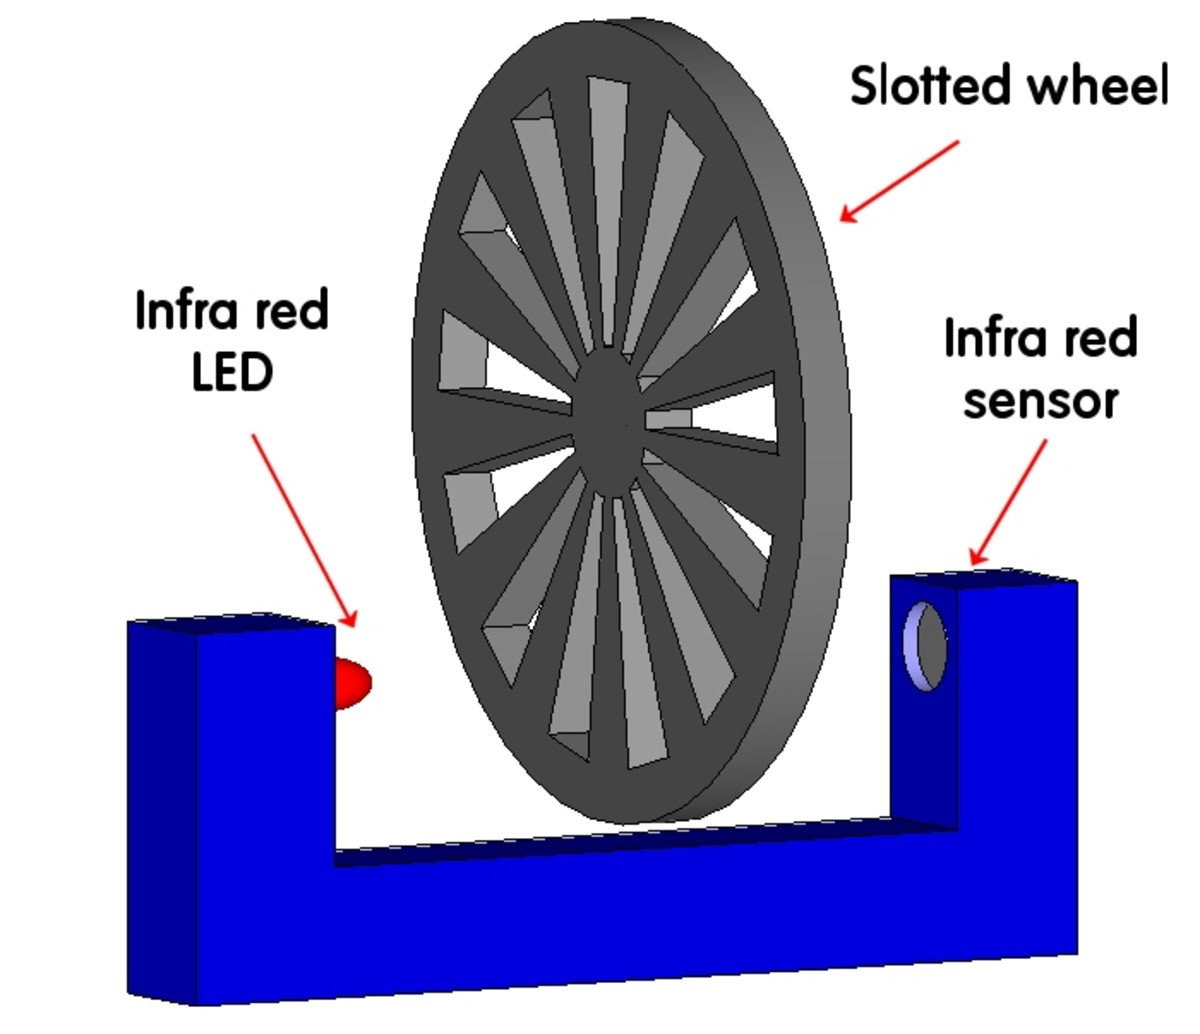 The scroll wheel spokes and slots repeatedly make and break the beam, so the sensor generates a pulse signal